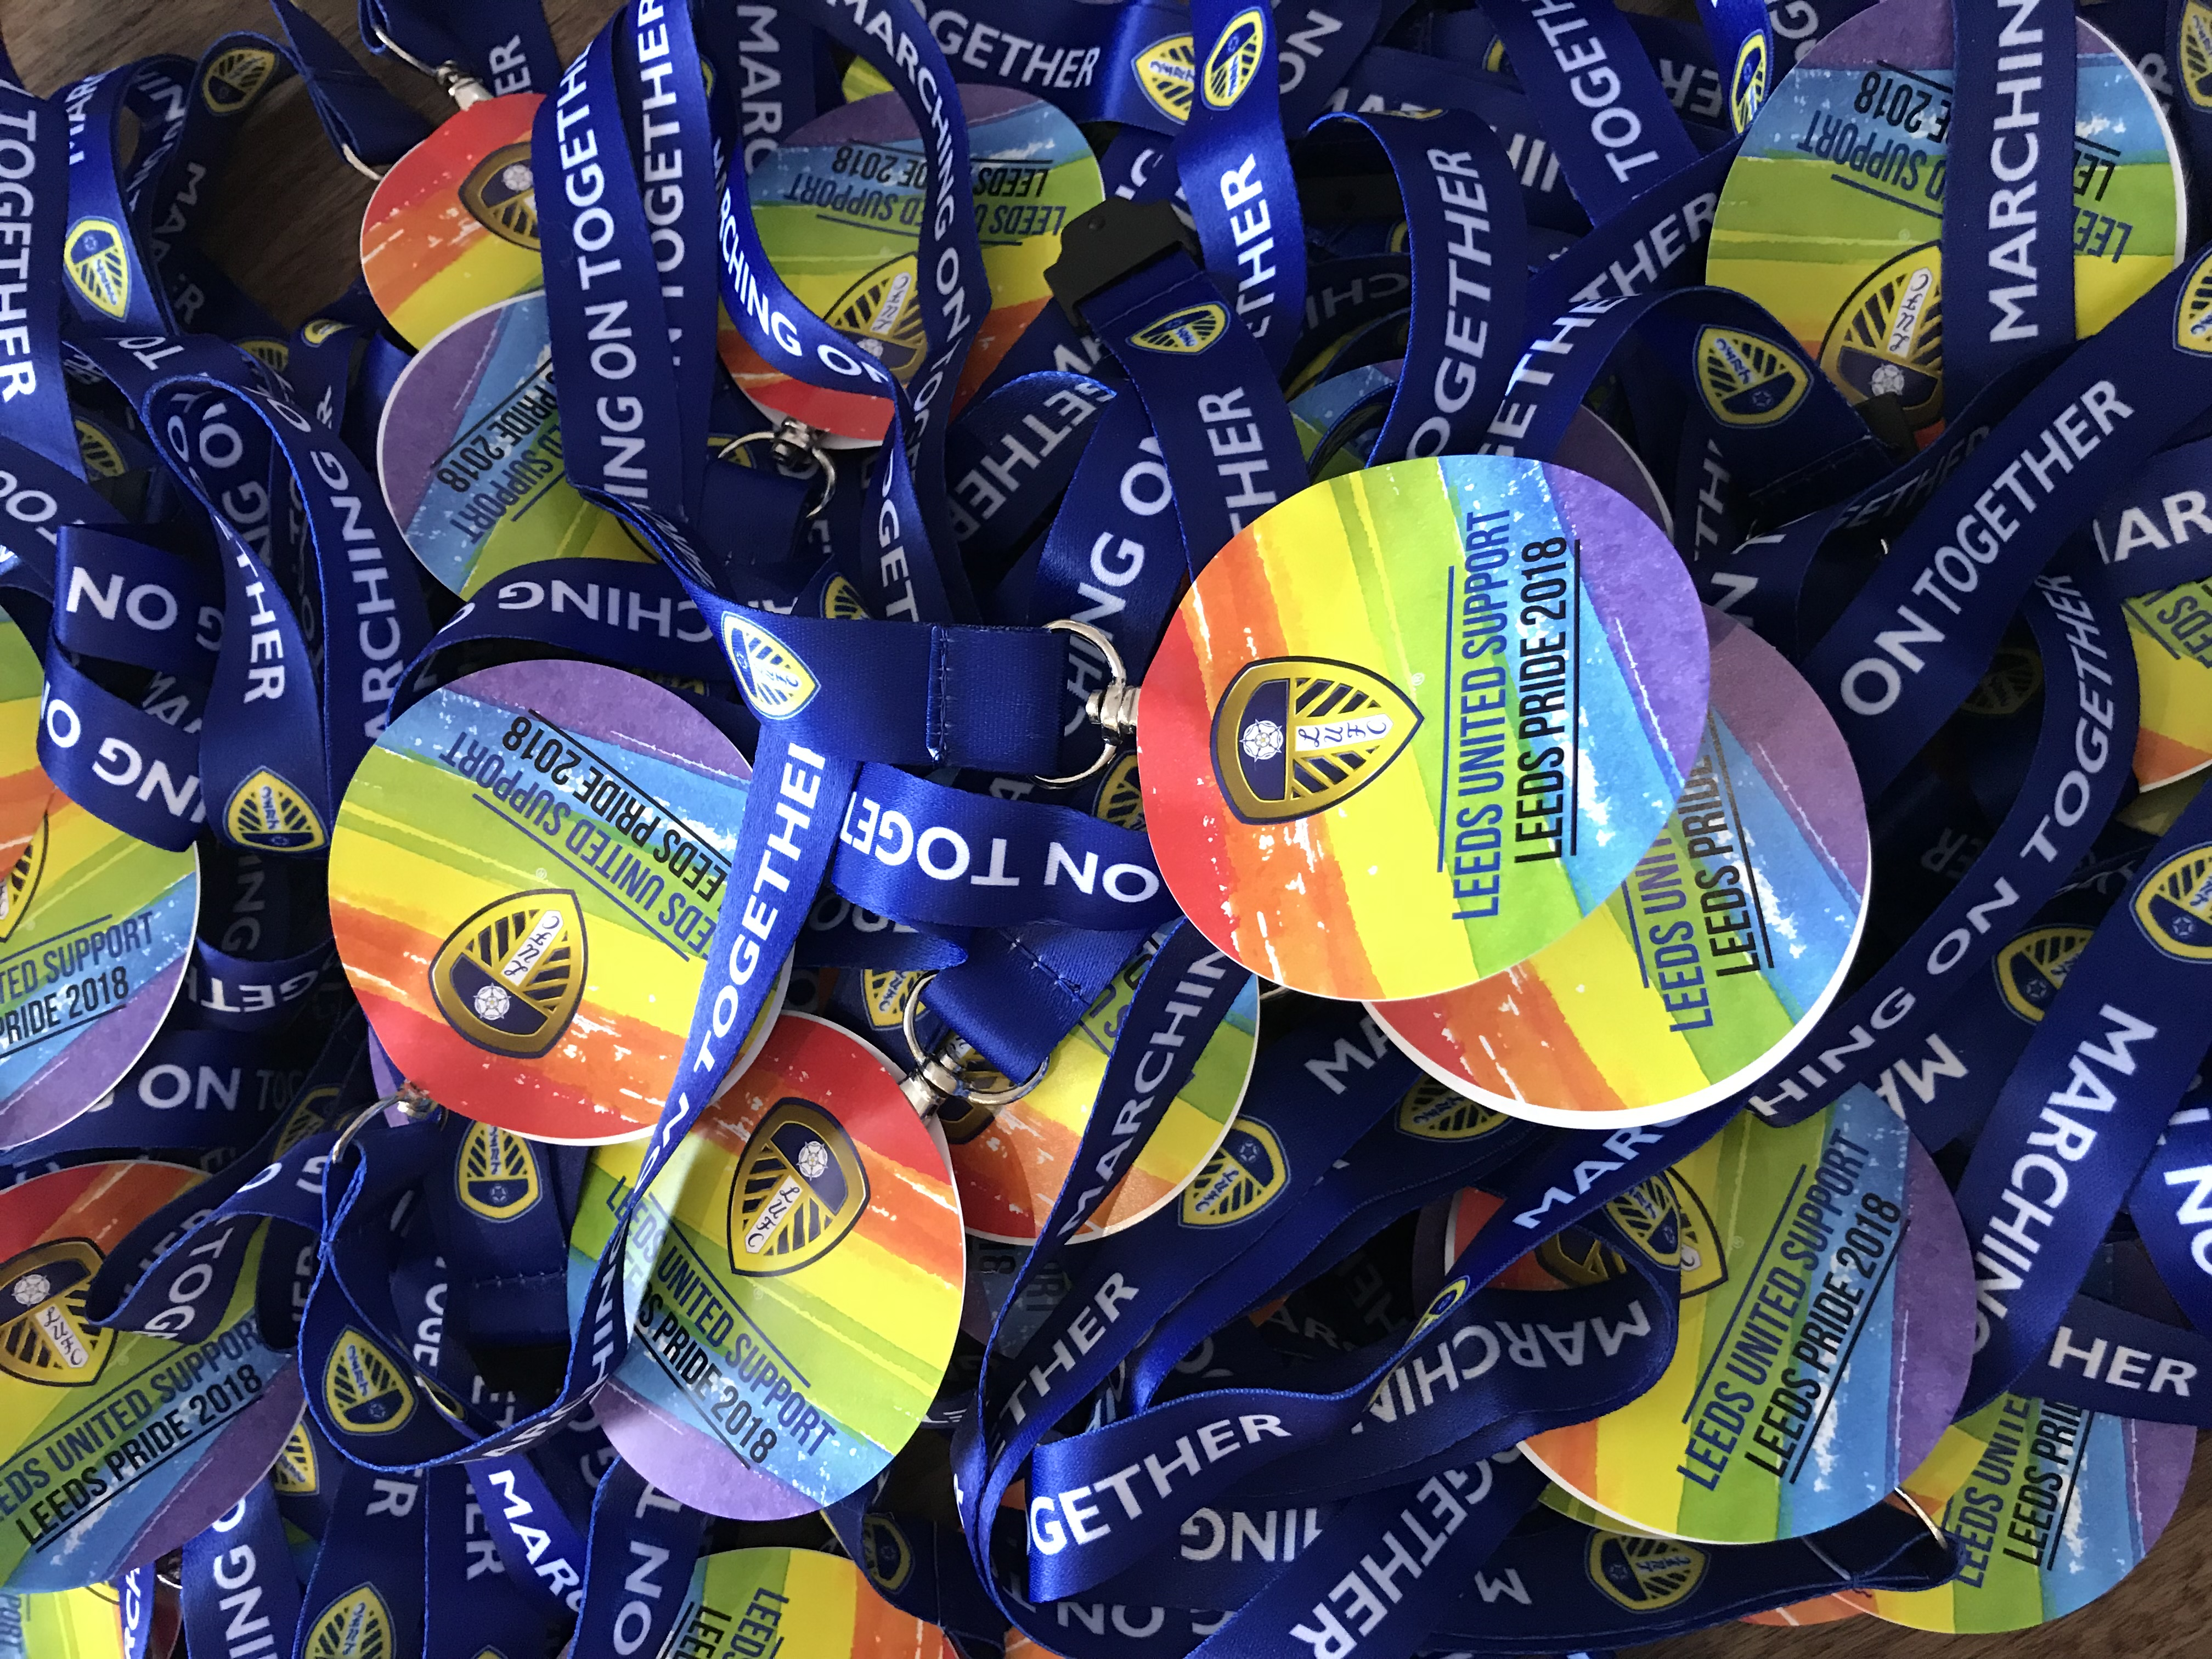 Colour photograph showing a large pile of lanyards with rainbow discs and the Leeds United logo on.